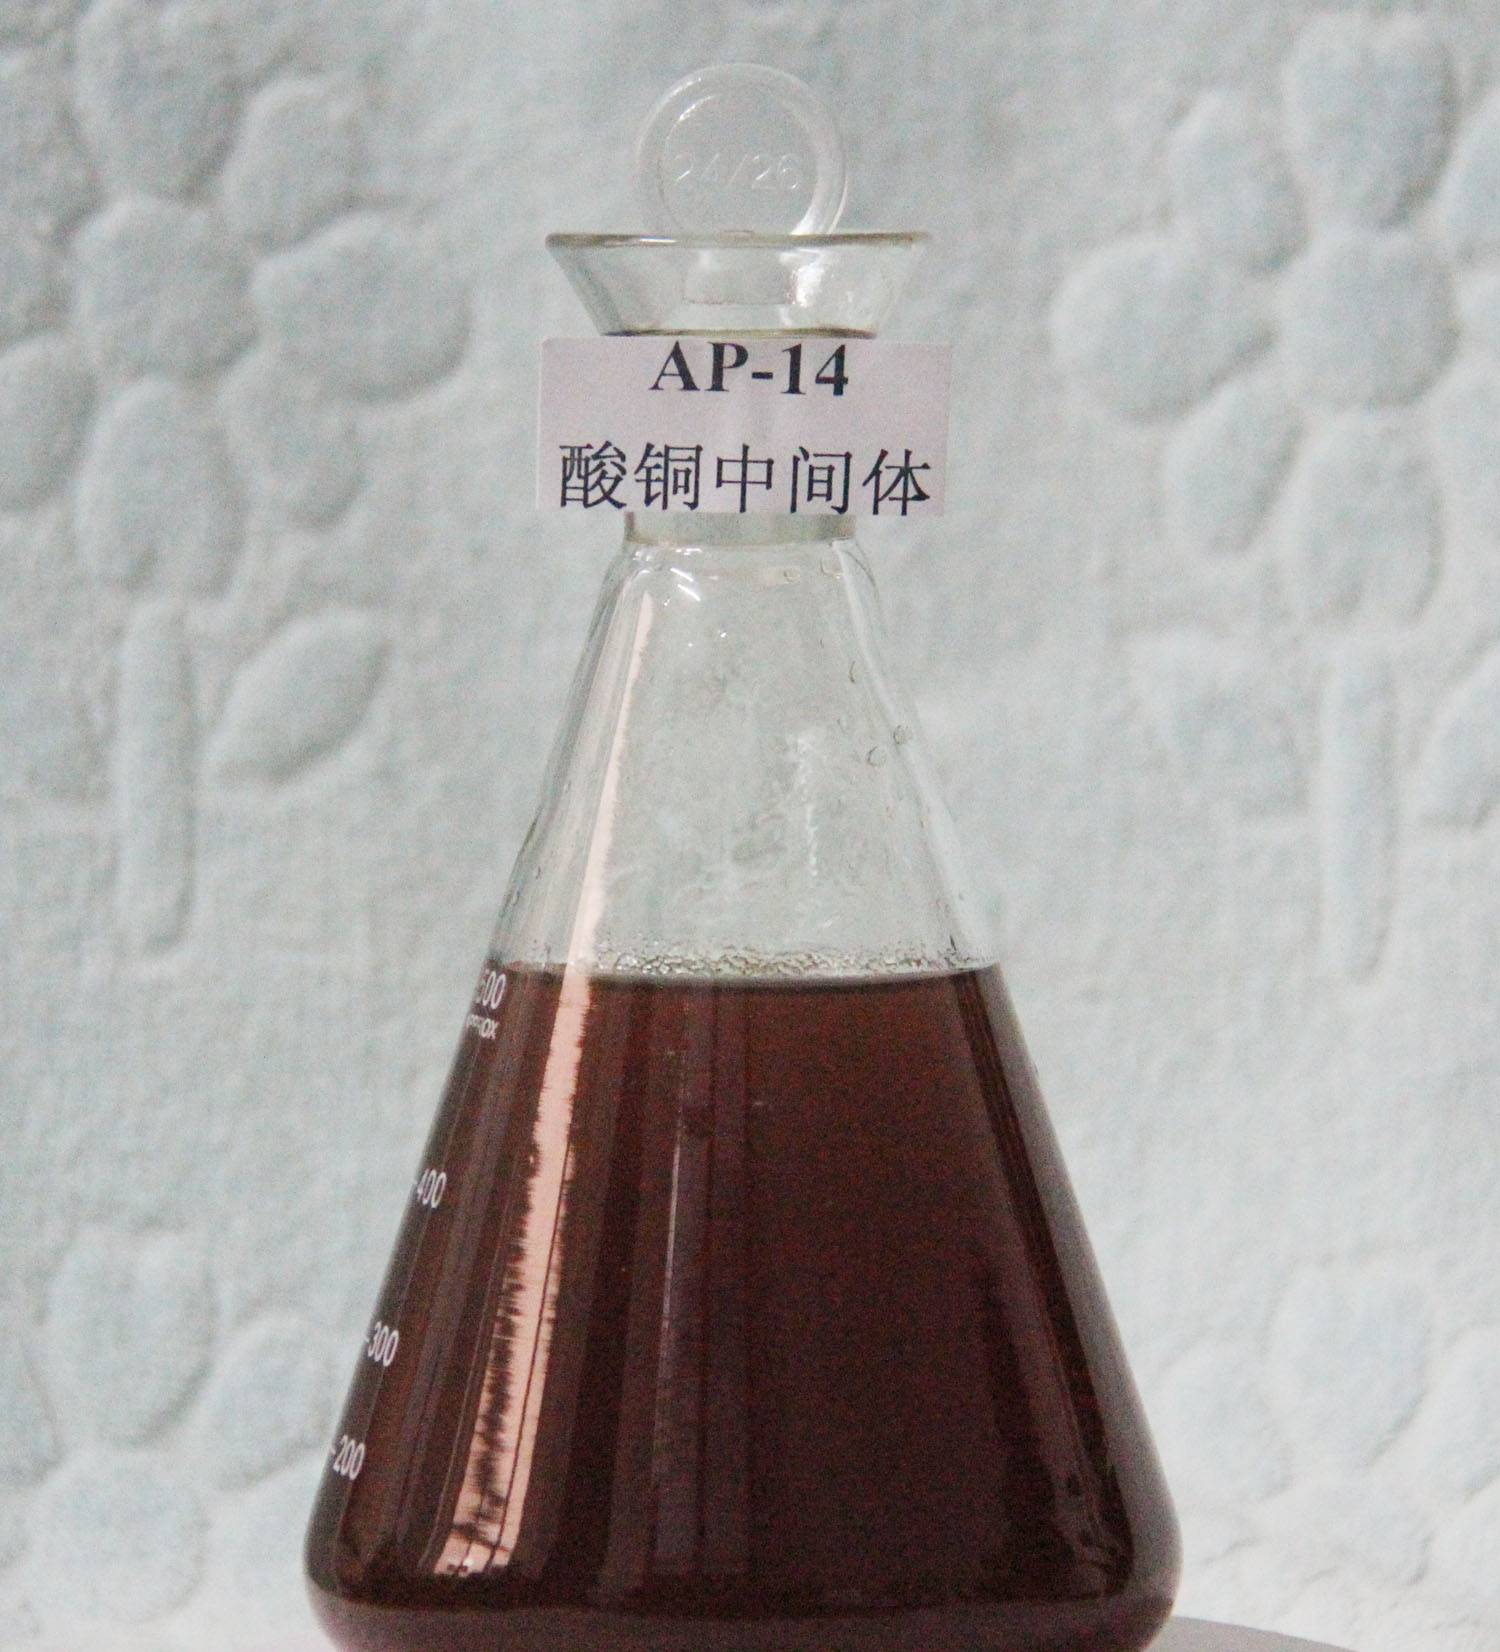 AP-14 acid copper brighteners Polyether compound